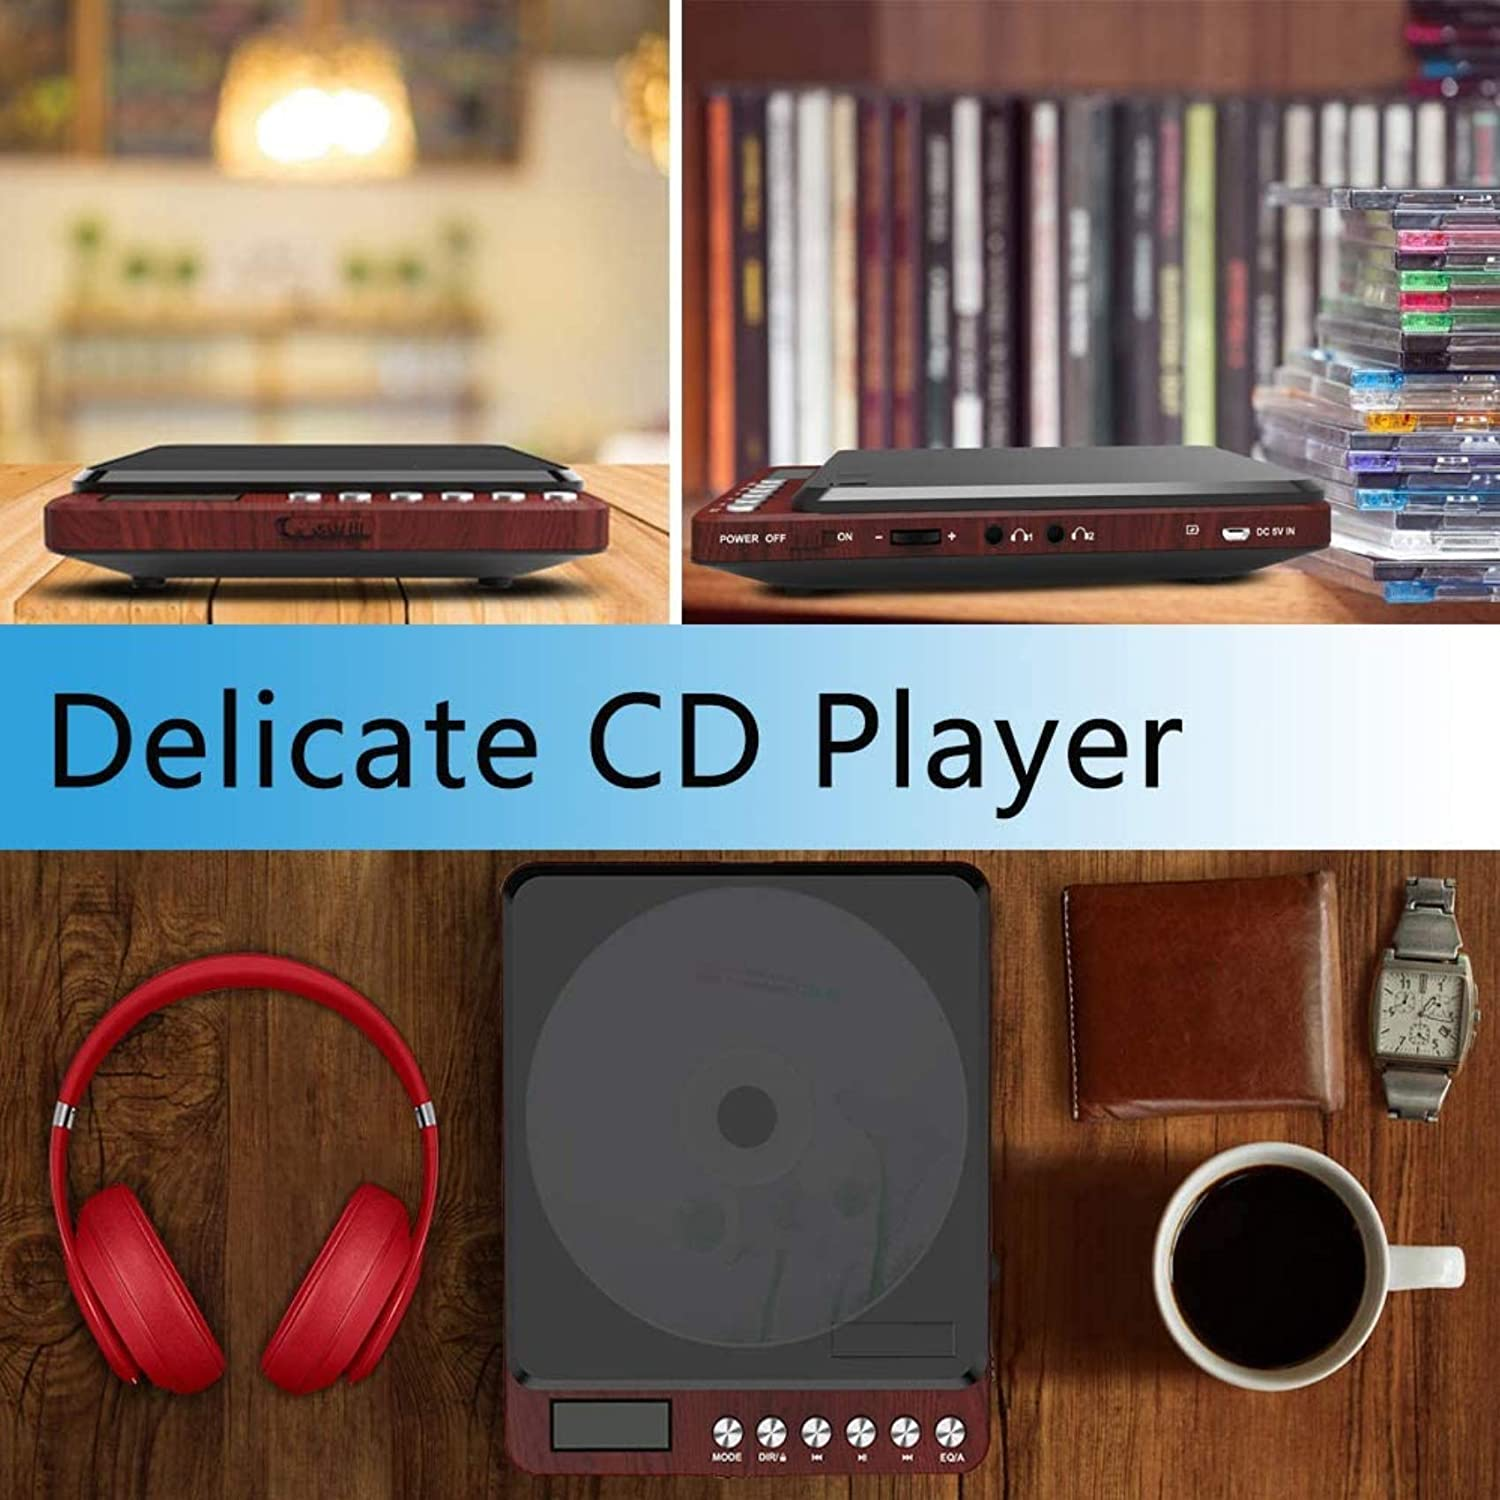 Portable CD Player with Headphones, Monodeal Compact Design CD Player with LCD Disply, Anti-Skip Personal CD Player for Car, Rechargeable CD Player for Music Audiobook Listening